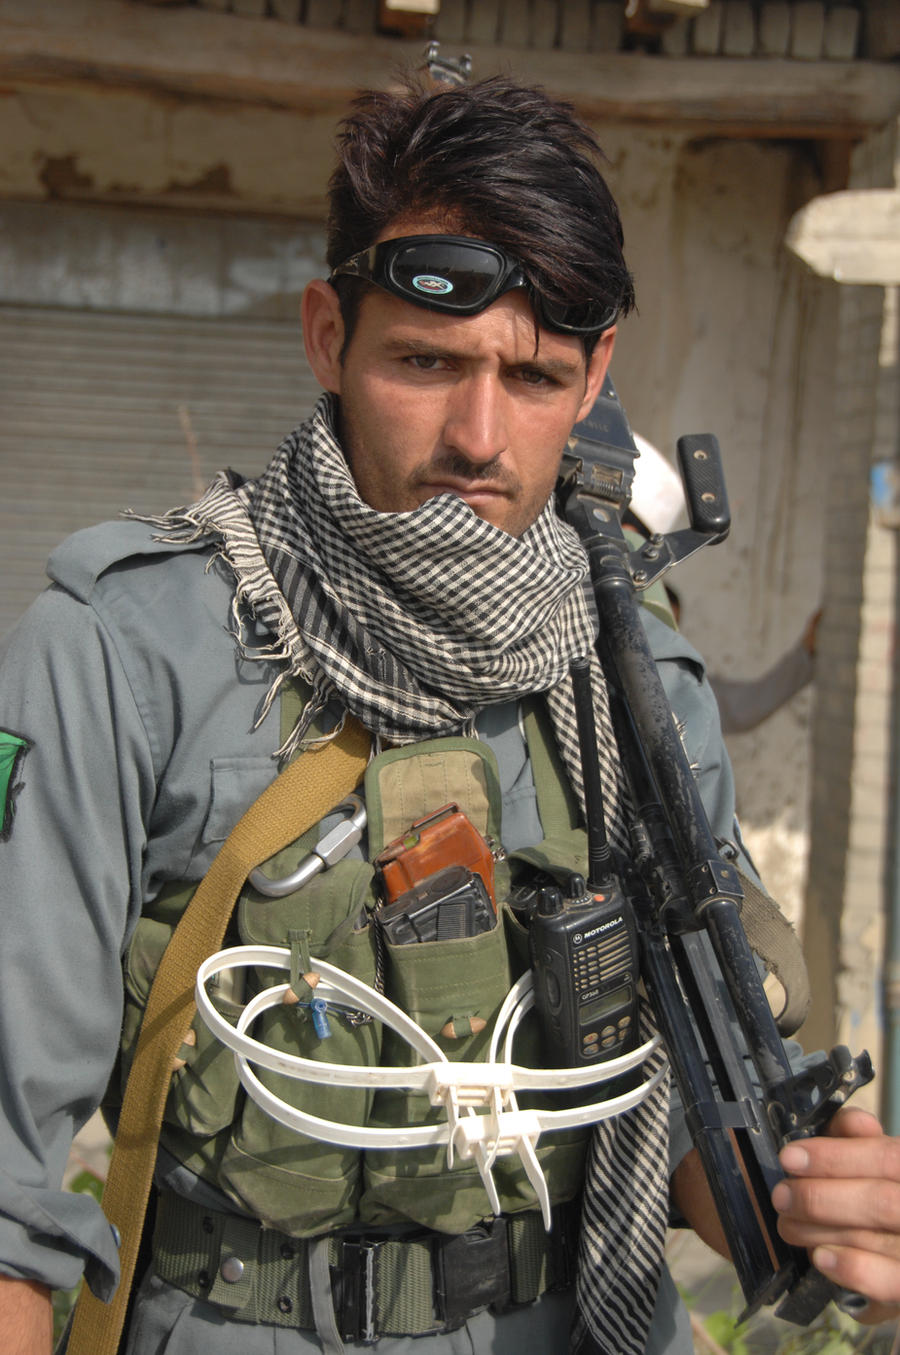 Afghanistan National Policeman by MilitaryPhotos